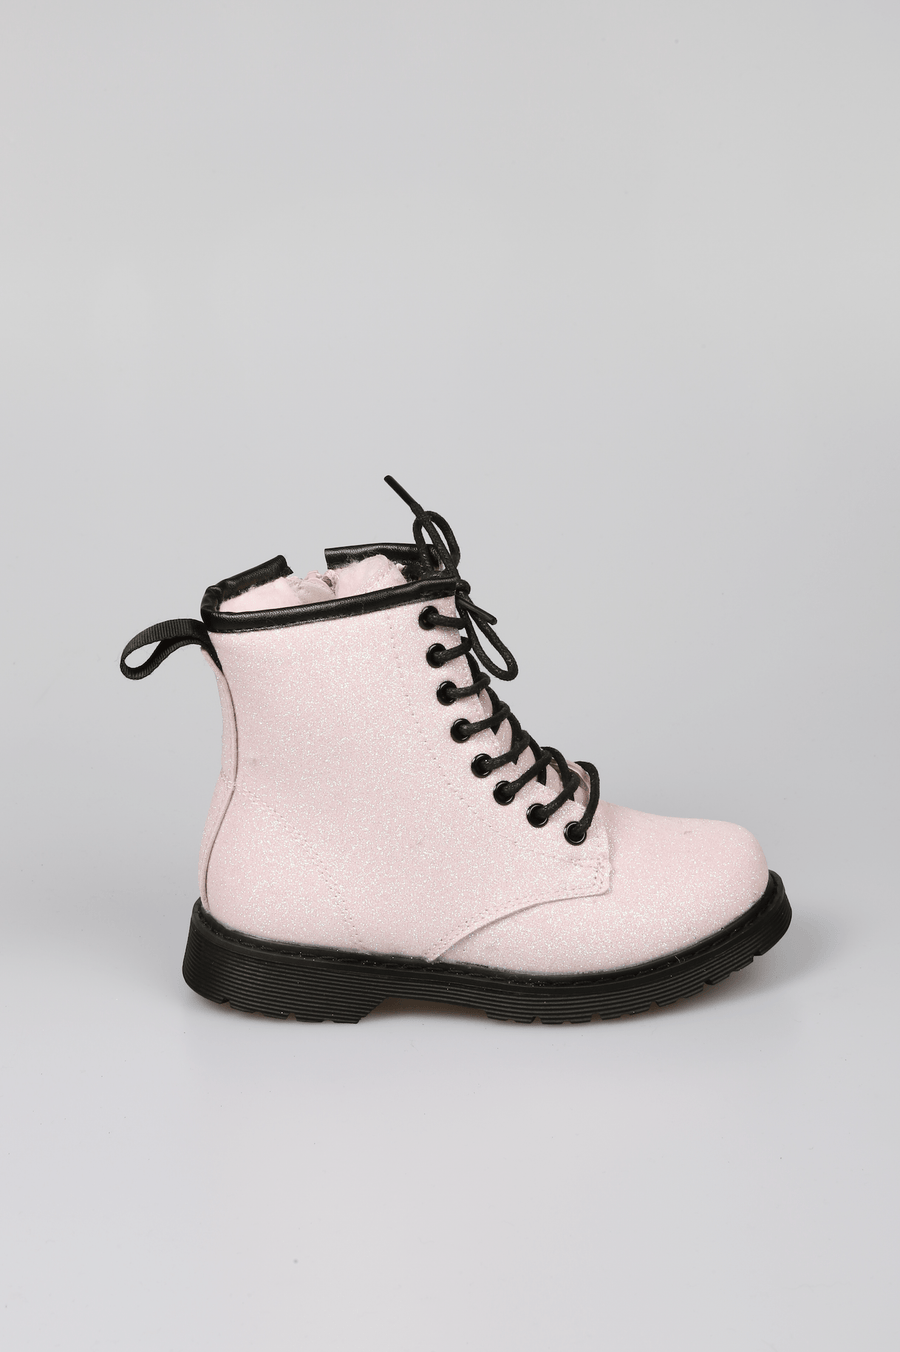 Millie Lace Up Faux Fur Lined Glitter Boots Pink From Little Attitude